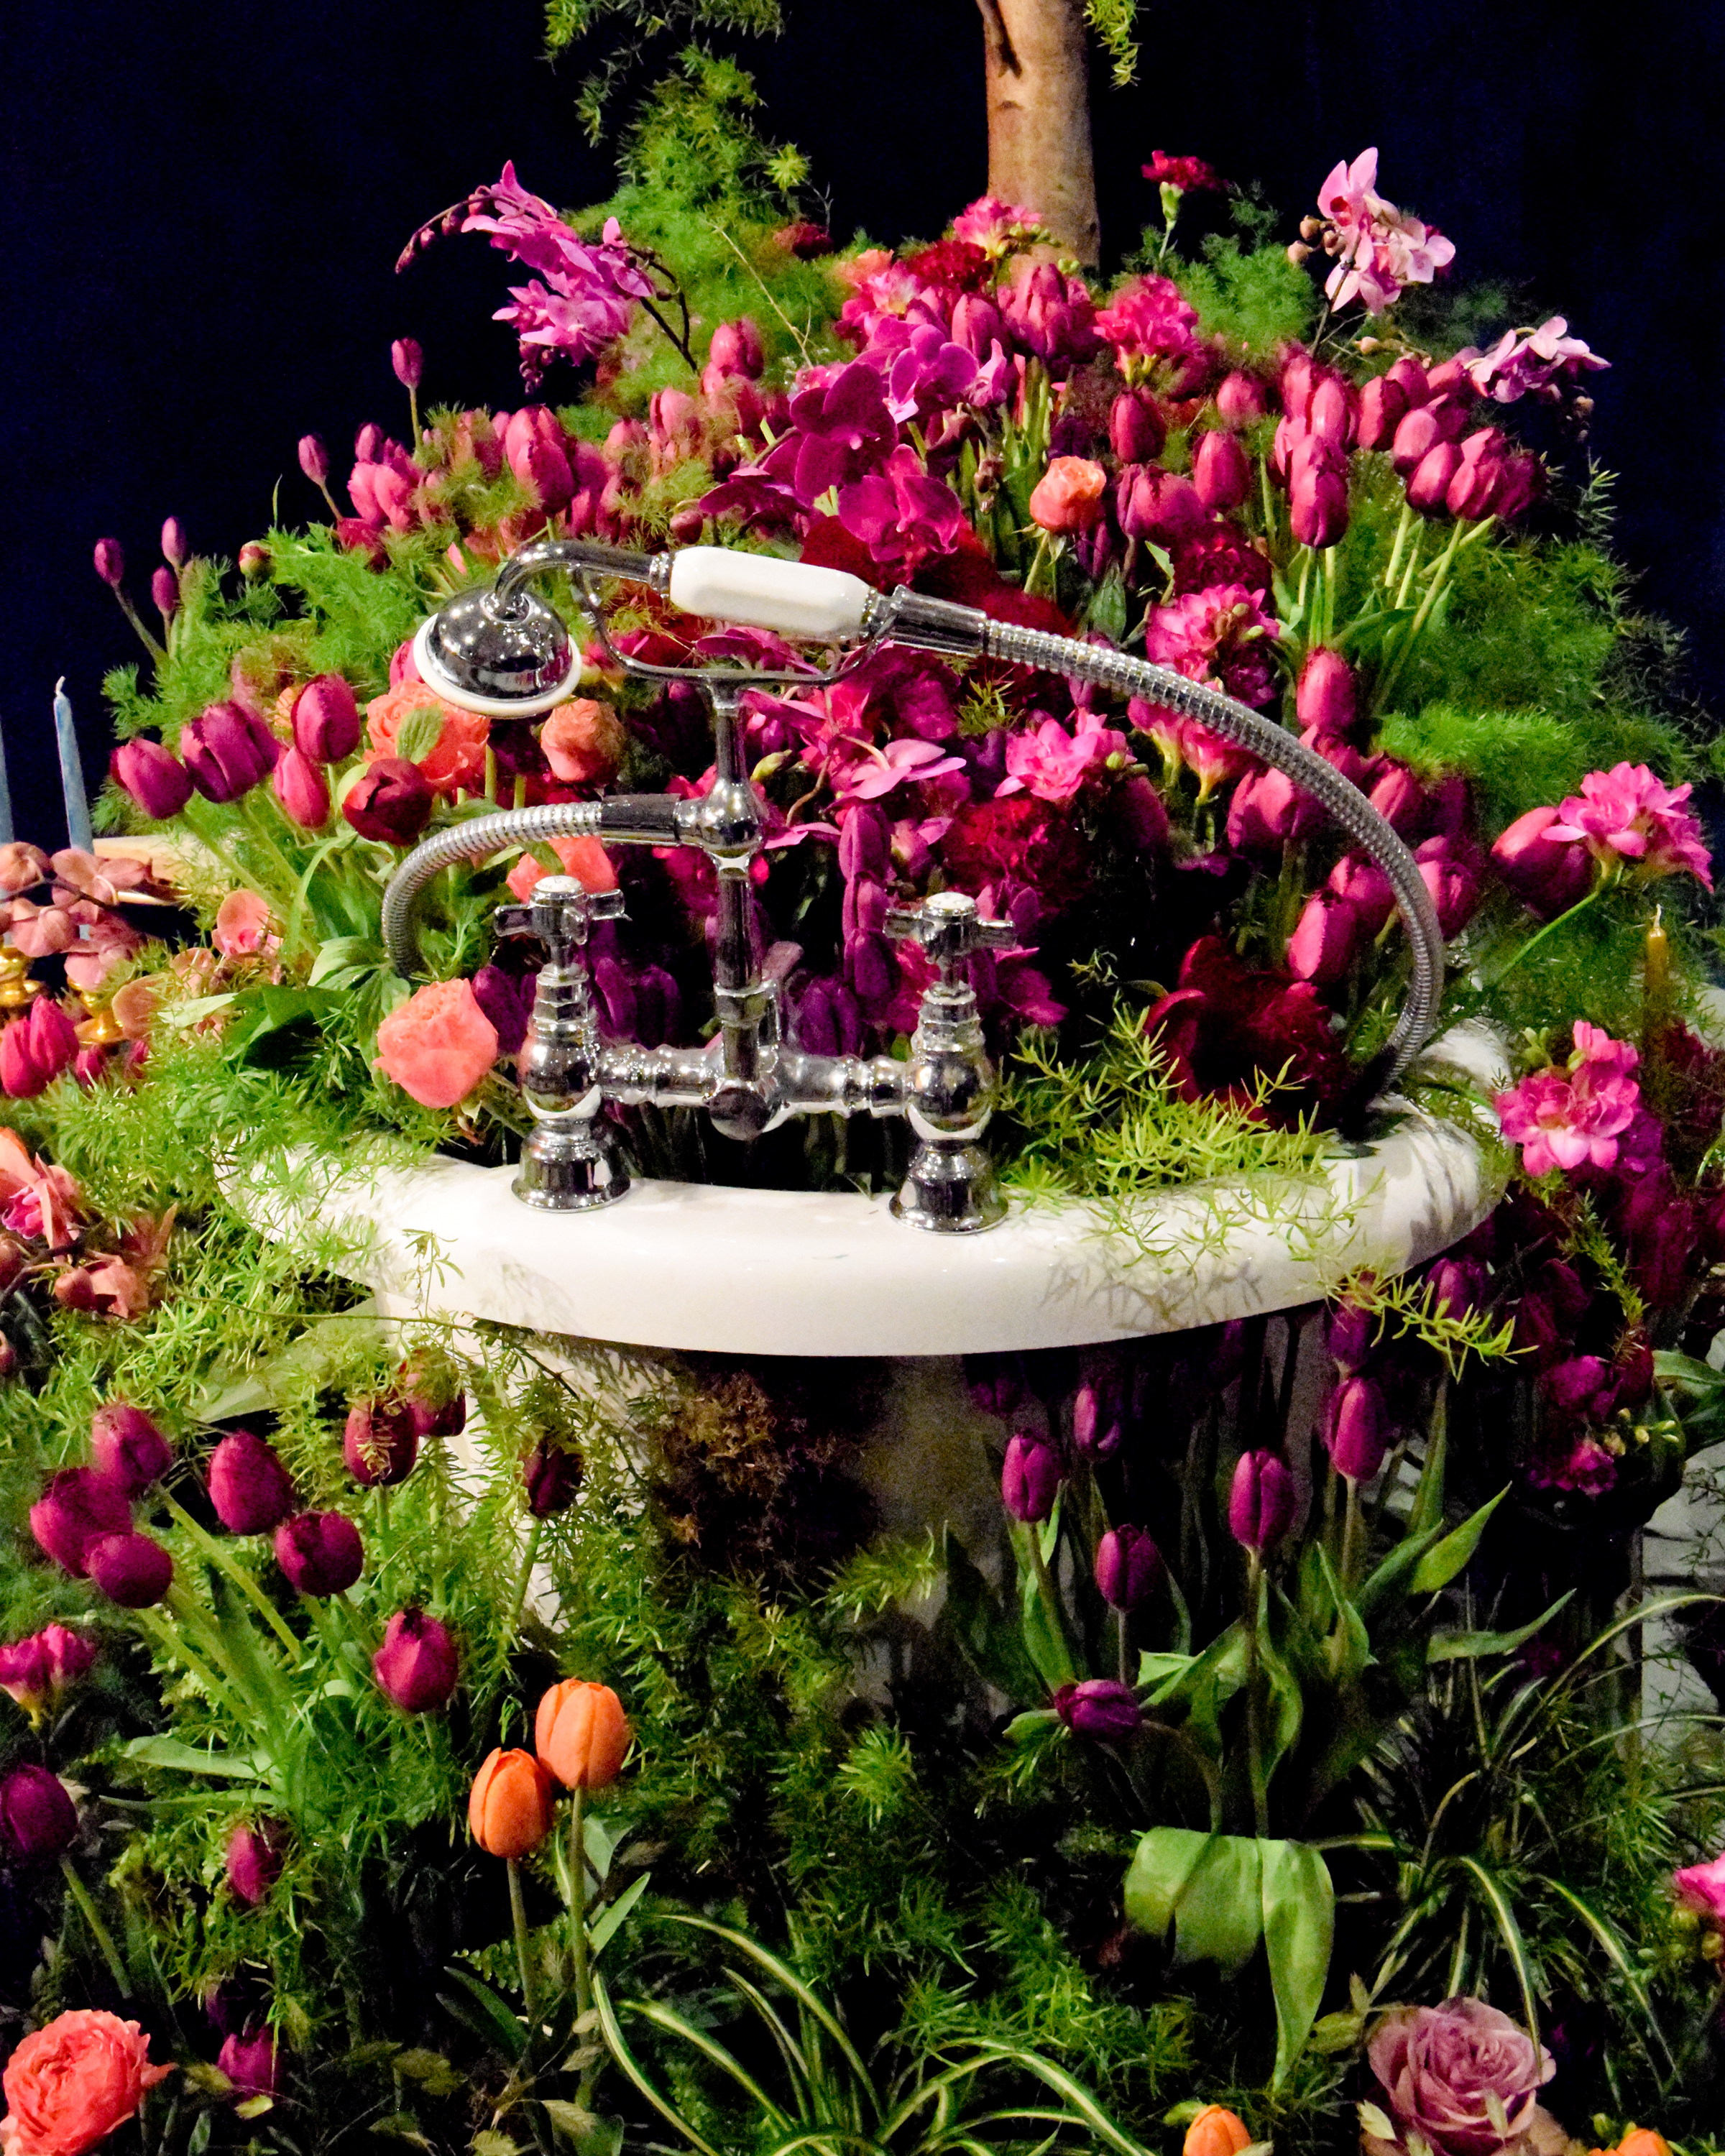 Prestige Attends 2018 Harrogate Flower Show Flower Pressflower Press